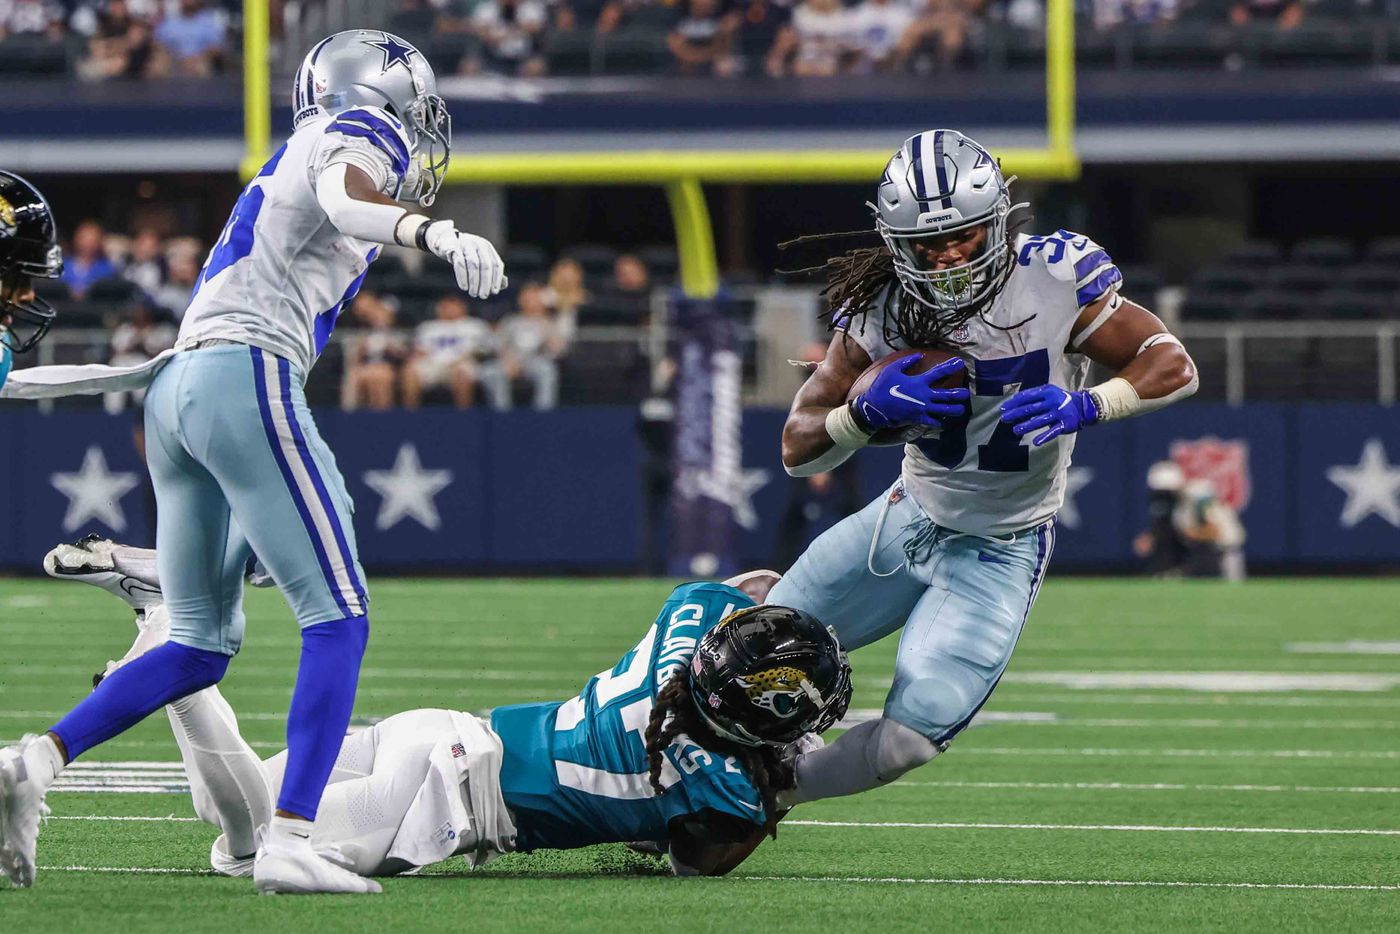 Dallas Cowboys' offense JaQuan Hardy, 37, trips over Jacksonville Jaguars' Chris Claybrooks, 27, during the 2nd quarter of a preseason game against Jacsonville Jaguars at AT&T stadium in Arlington on Sunday, August 29, 2021. (Lola Gomez/The Dallas Morning News)